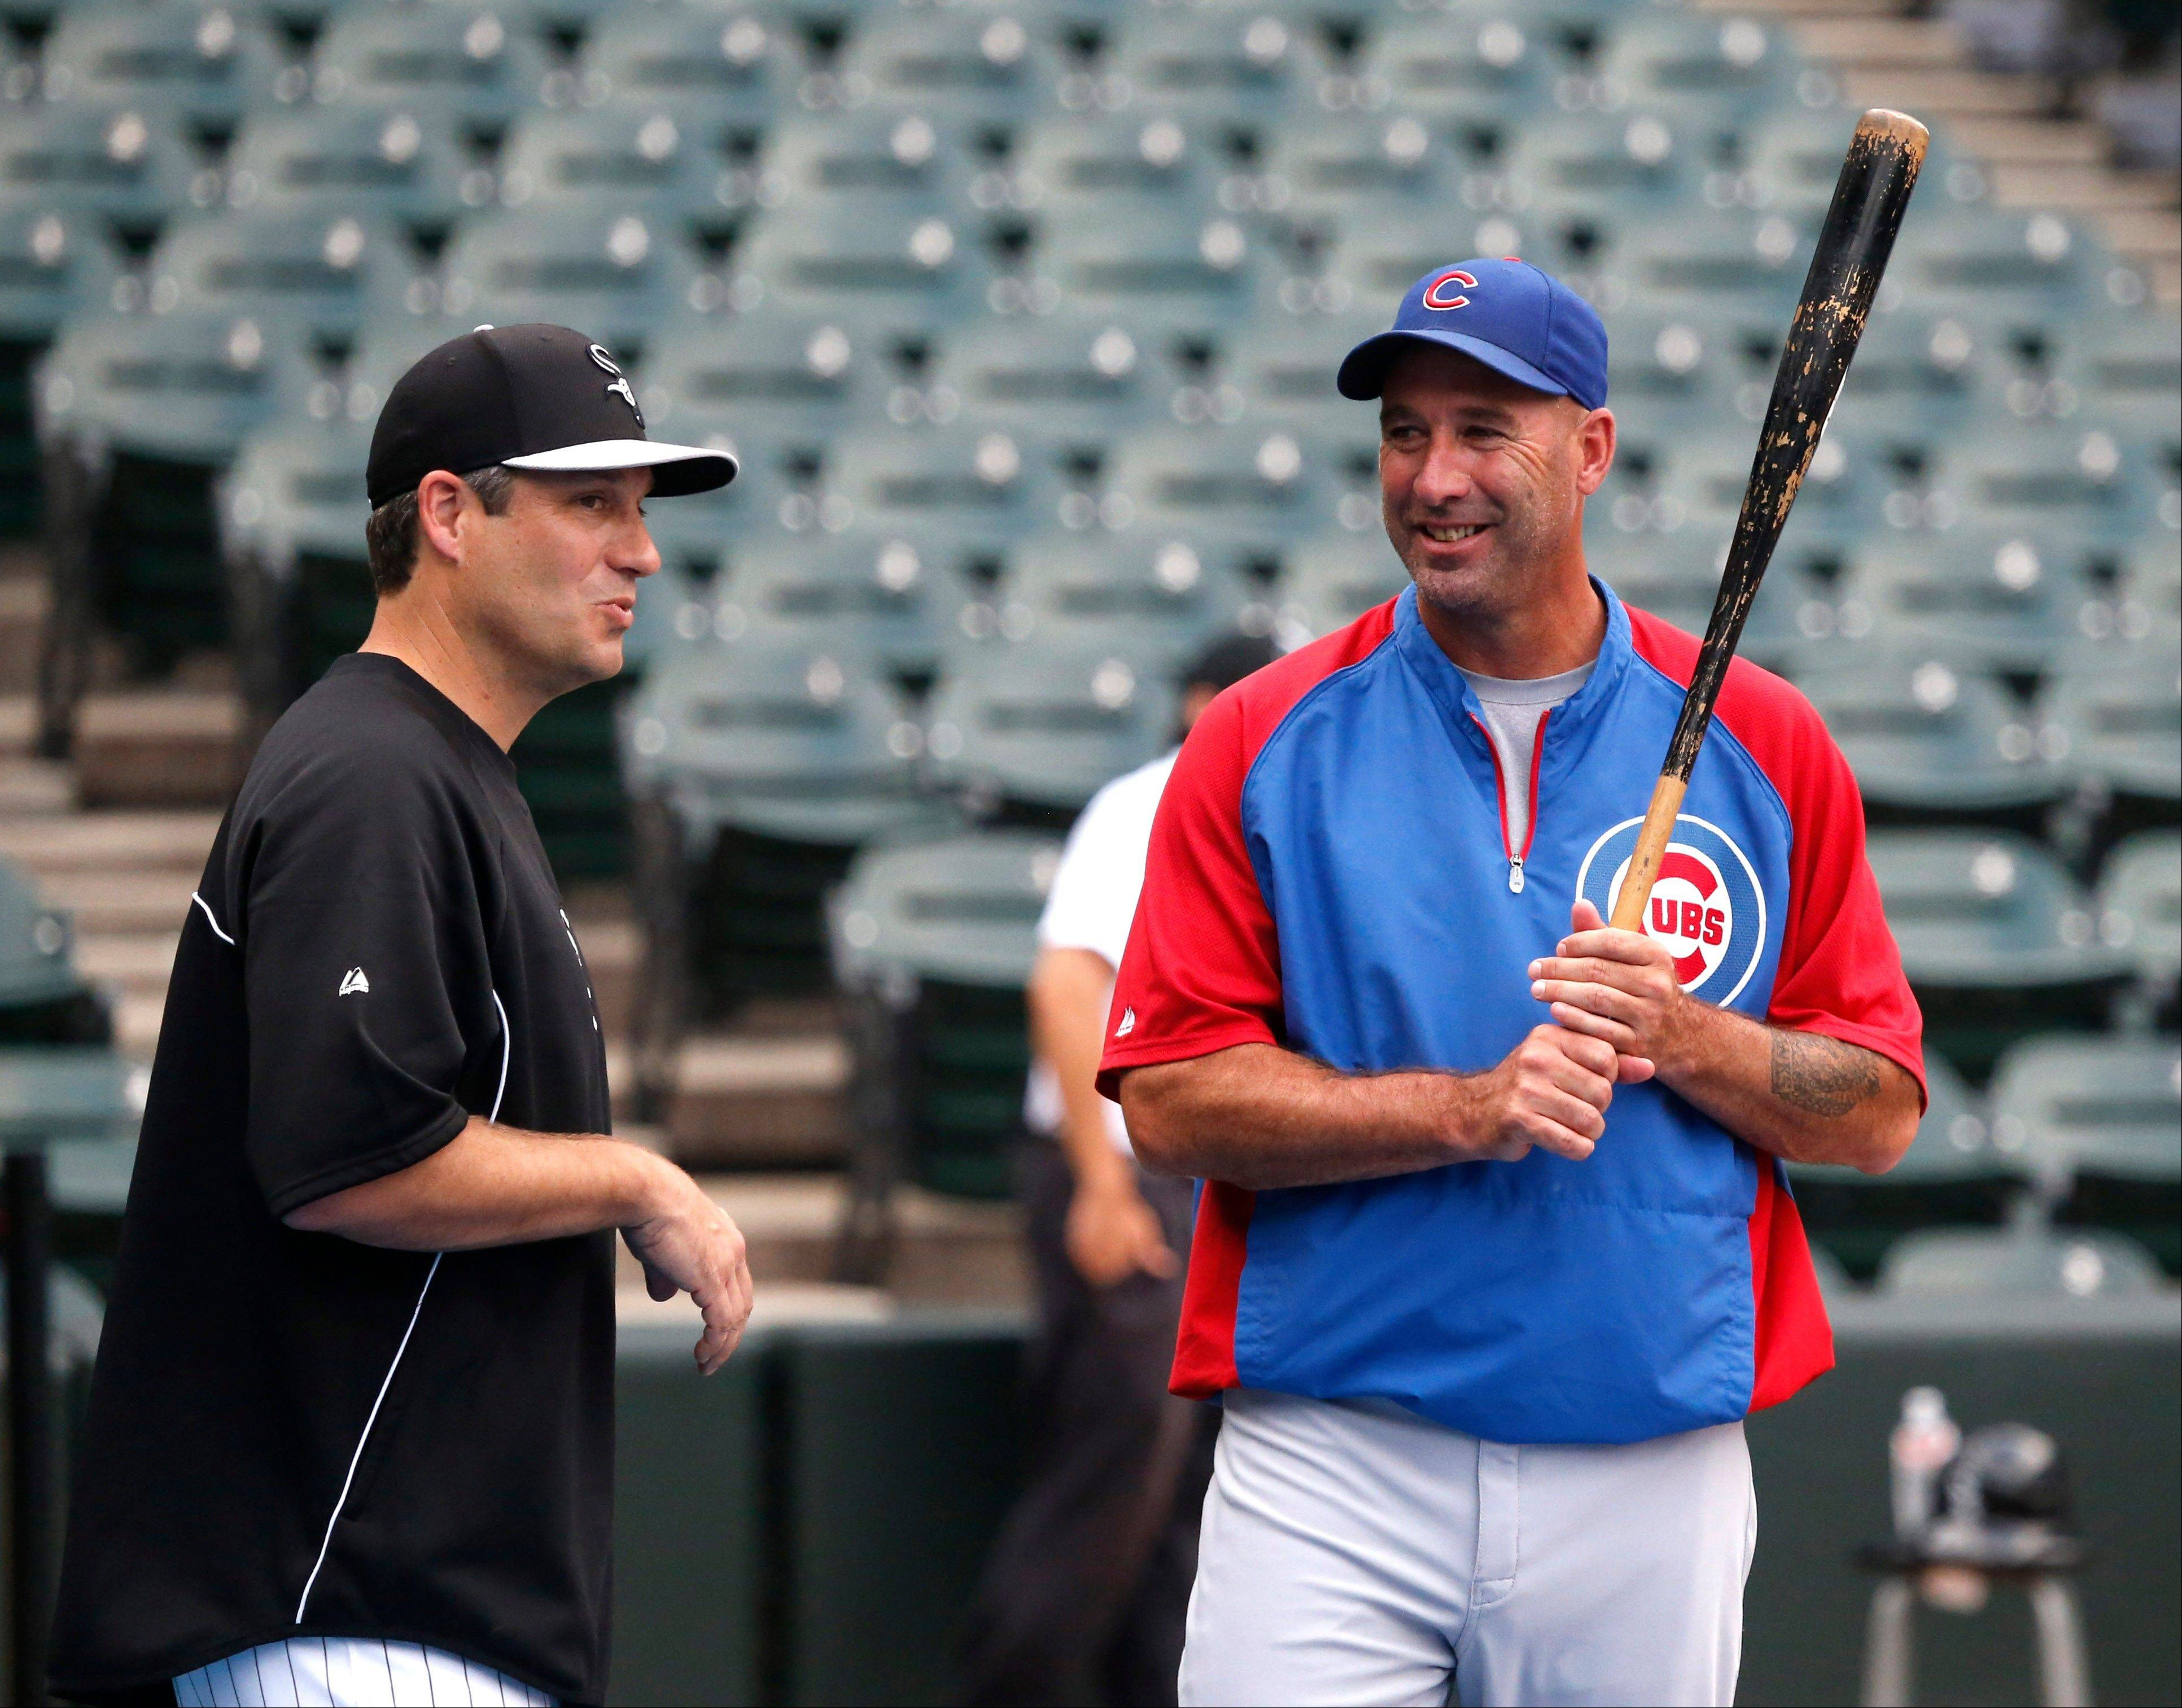 White Sox manager Robin Ventura, left, and Cubs manager Dale Sveum talk before Monday's game at U.S. Cellular Field.